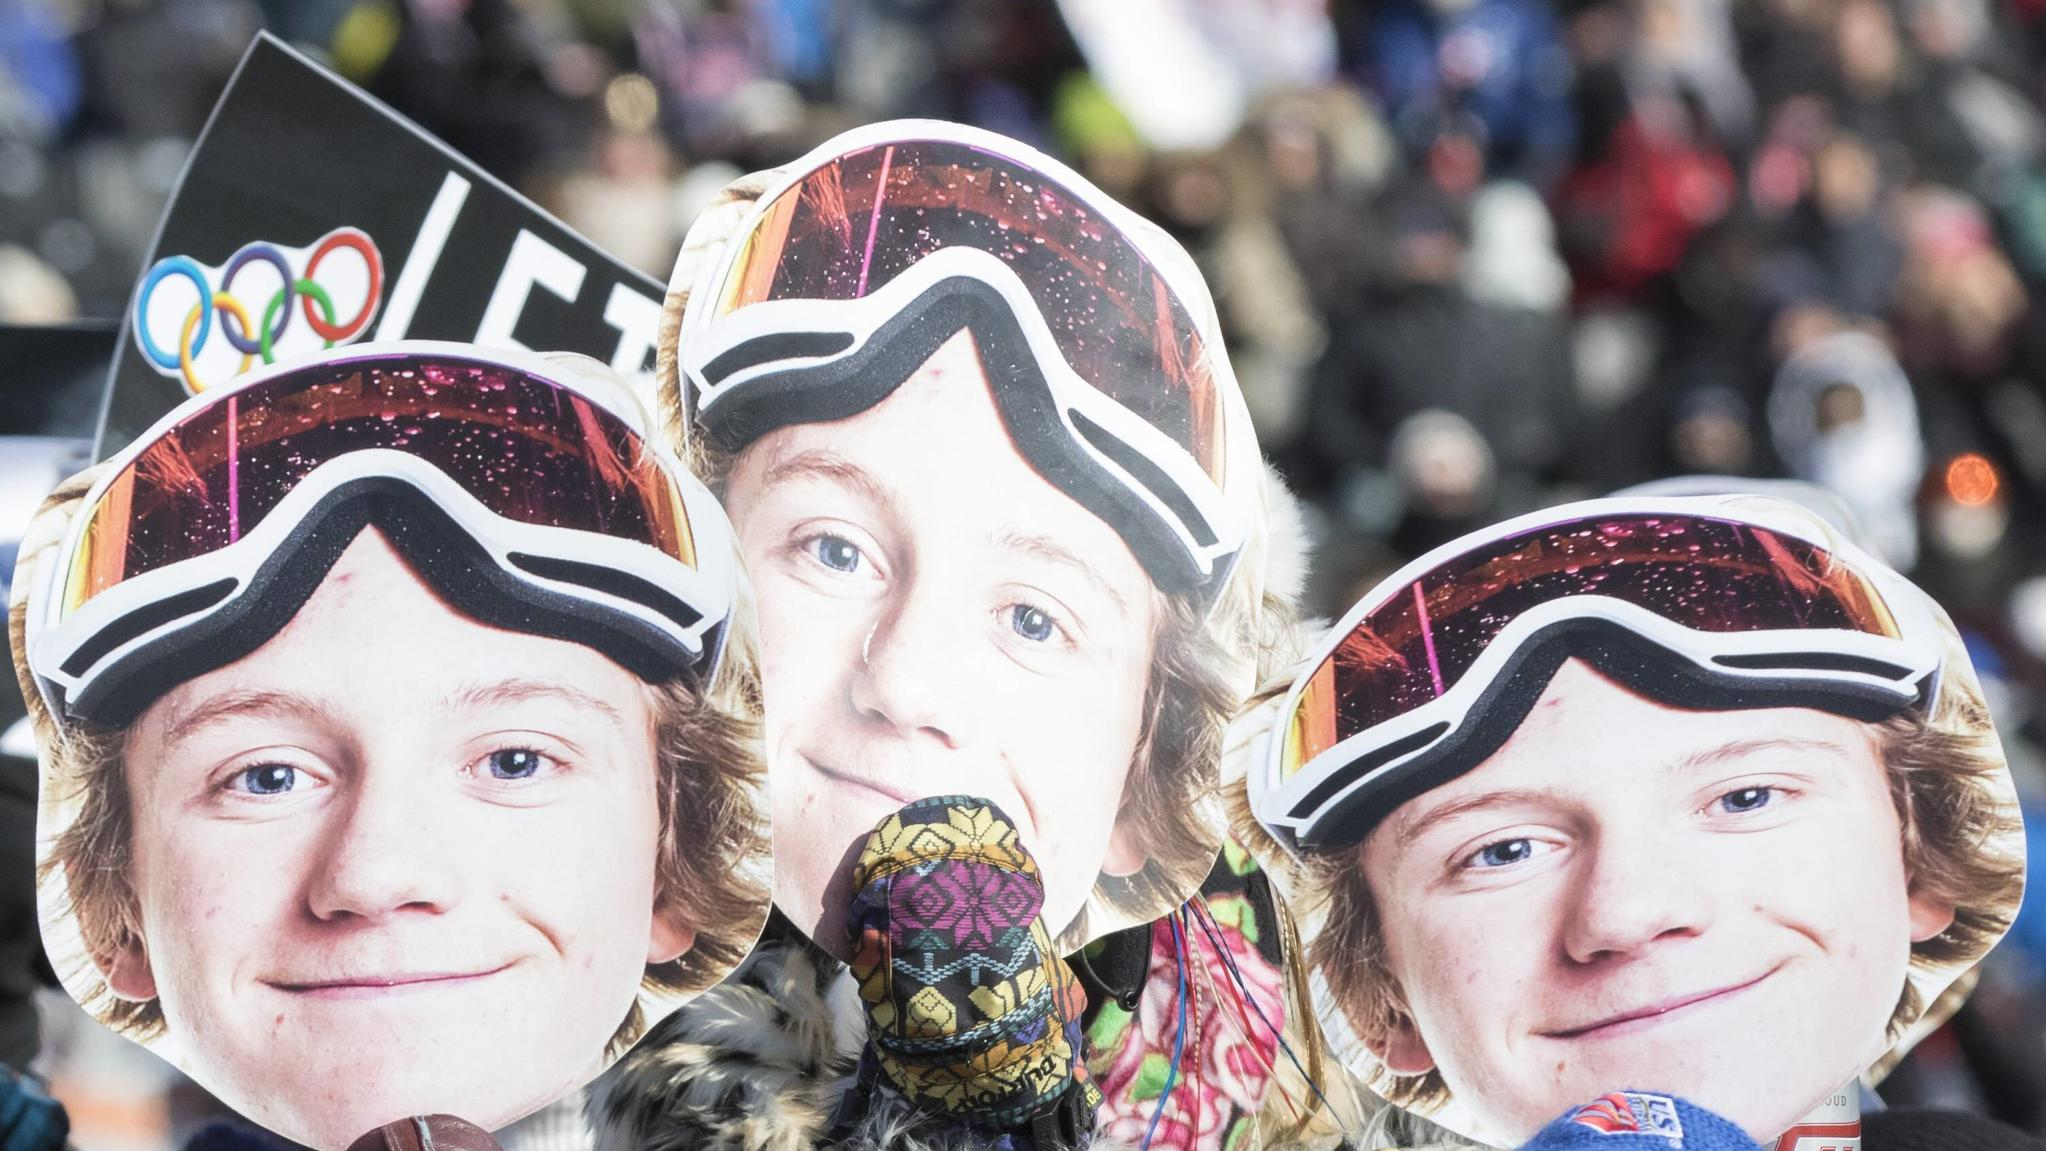 11th February 2018, Pyeongchang, South Korea&#x3B; 2018 Winter Olympic Games Olympische Spiele Olympia OS Phoenix Snow Park&#x3B; American spectators hold up face cutouts of Red Gerard (USA) to show their support for him during the Mens Slopestyle Final PUBLIC